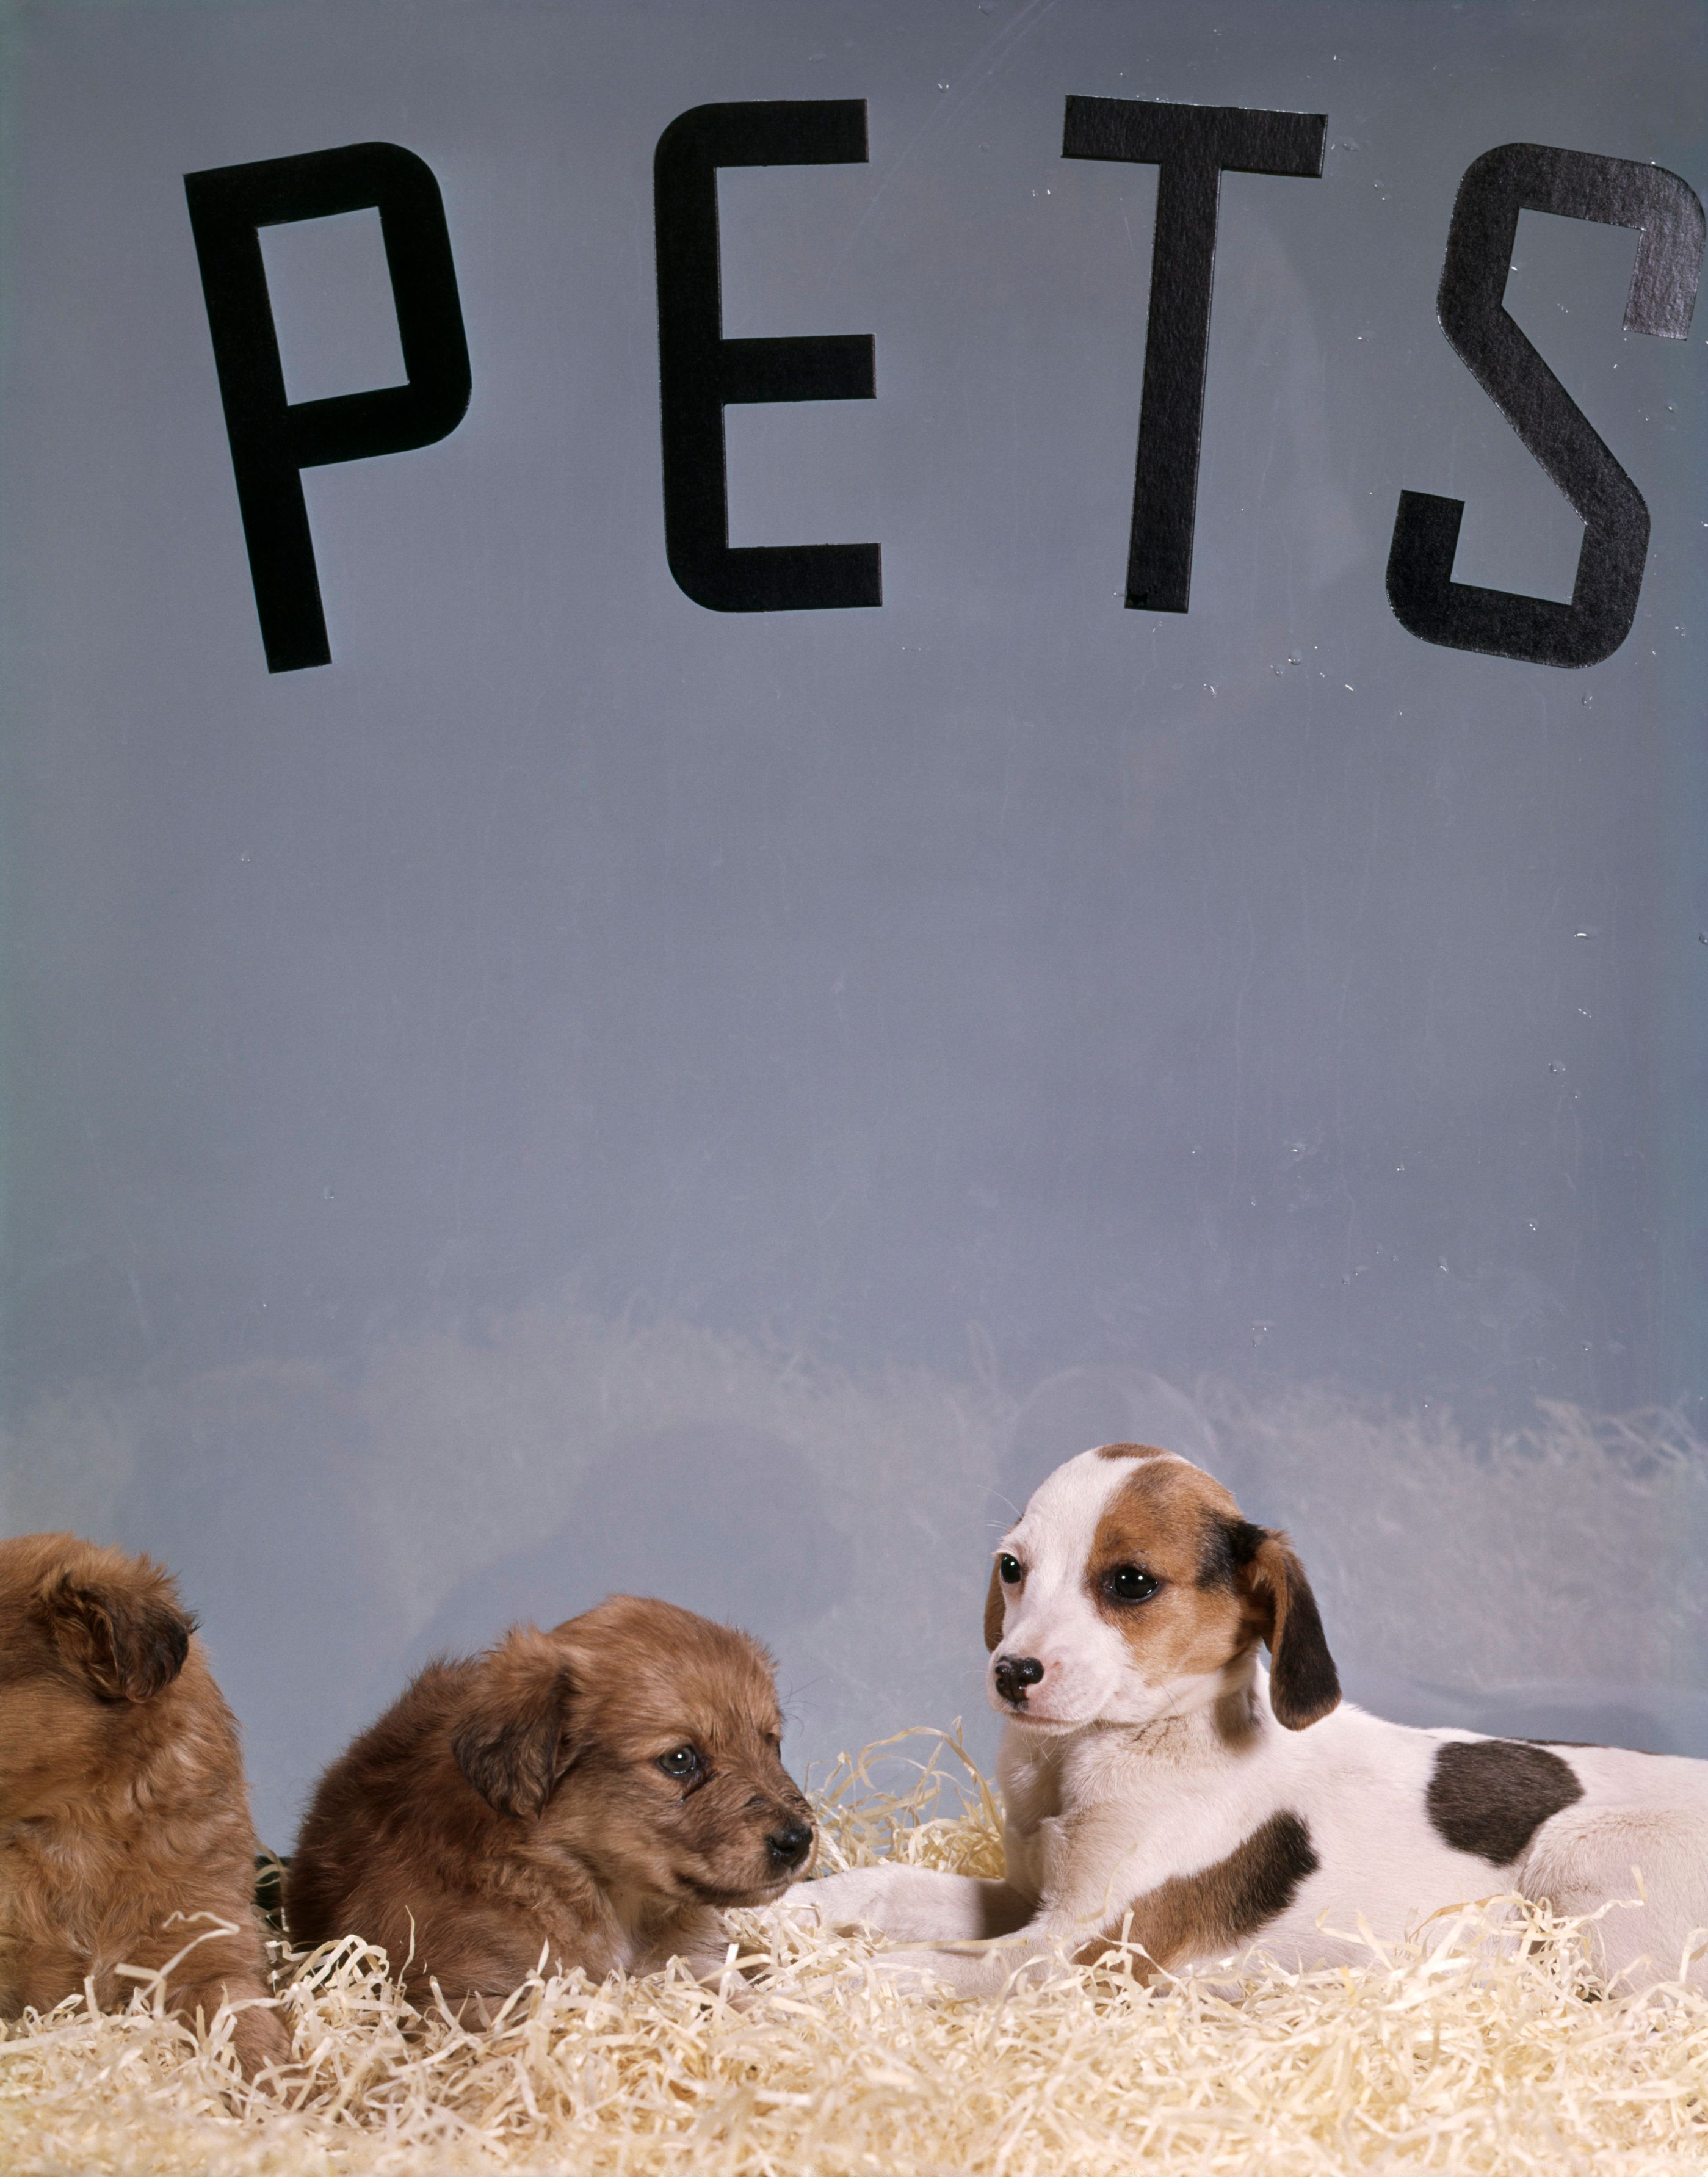 1960s PUPPY DOGS FOR SALE IN PET STORE WINDOW  (Photo by H. Armstrong Roberts/ClassicStock/Getty Images)